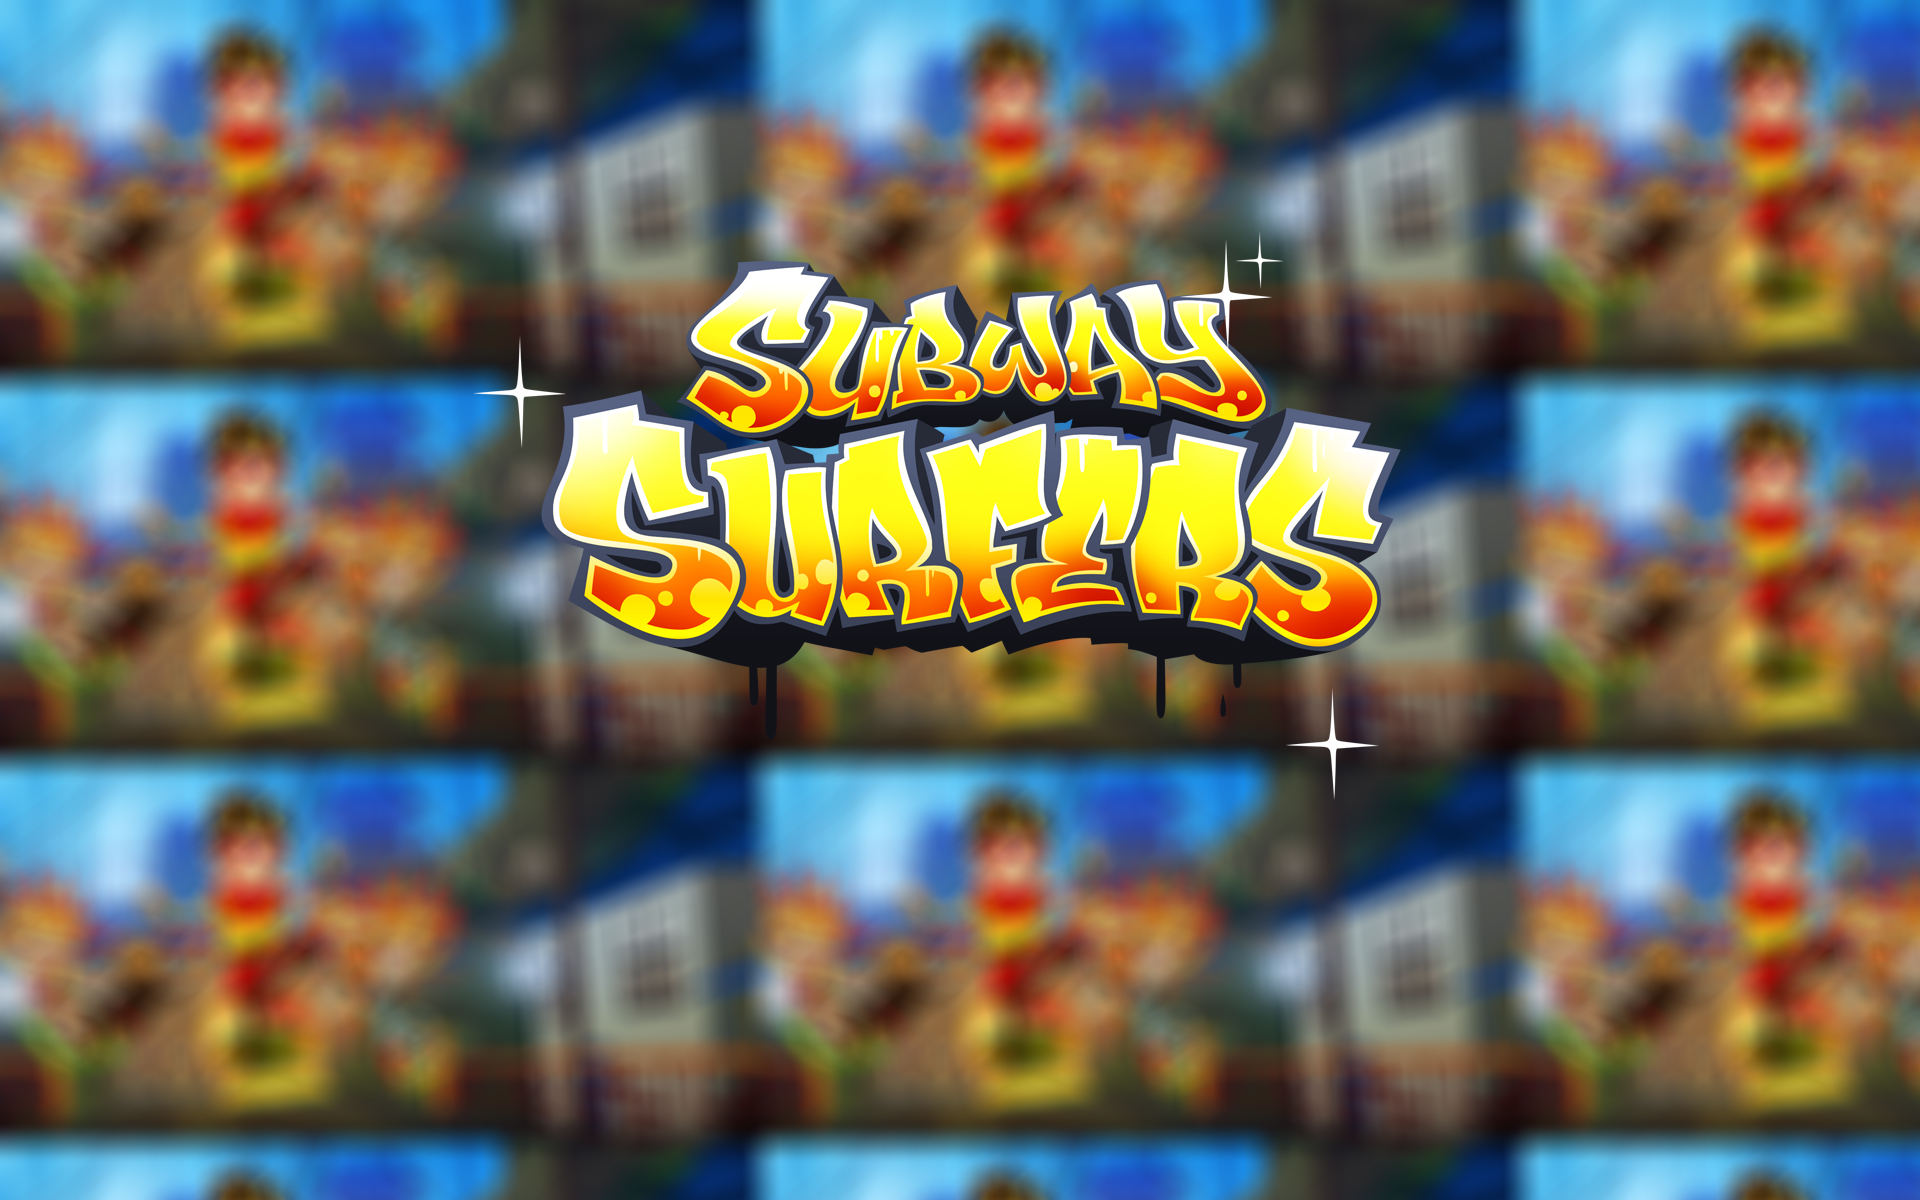 Subway Surfers is getting abandoned on Windows Phone ...